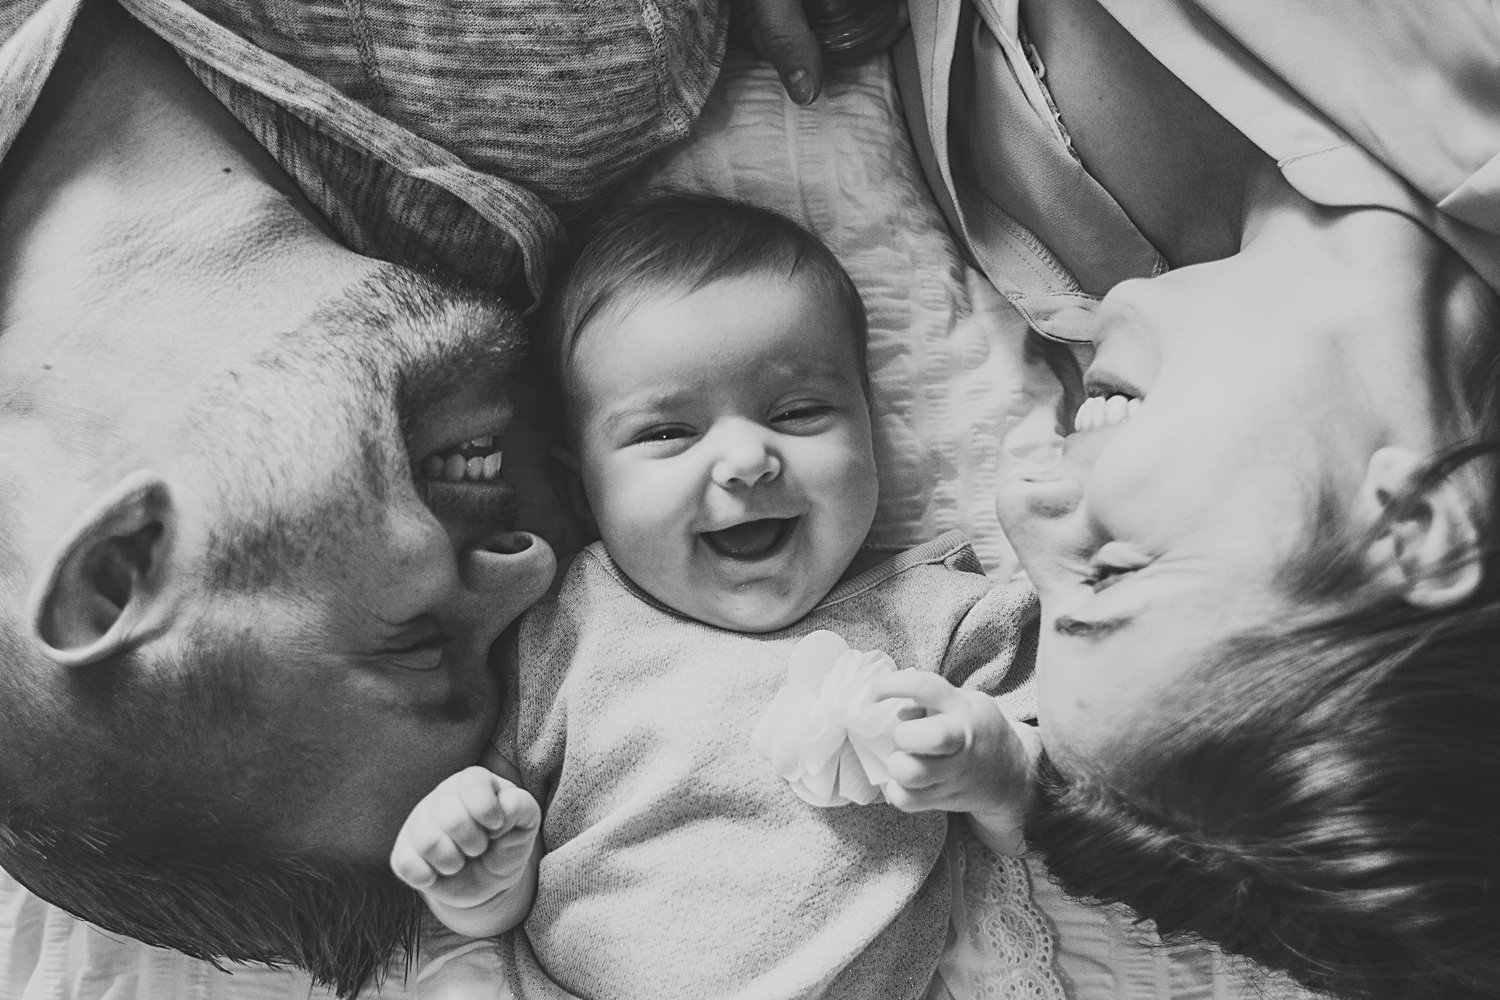 Laughing baby between mom and dad laying on bed